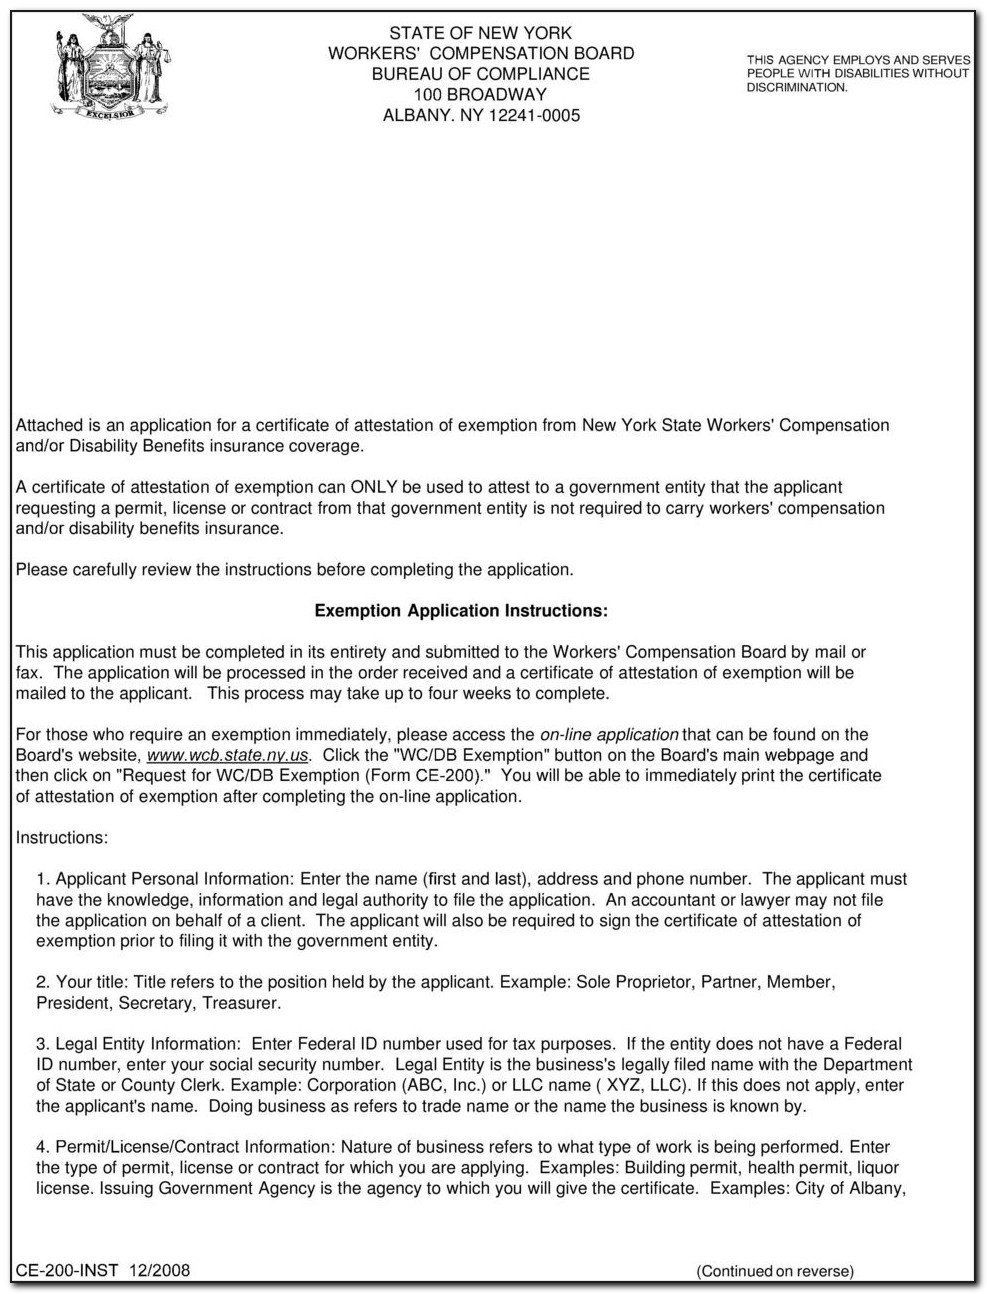 Workers Compensation Form Ce 200